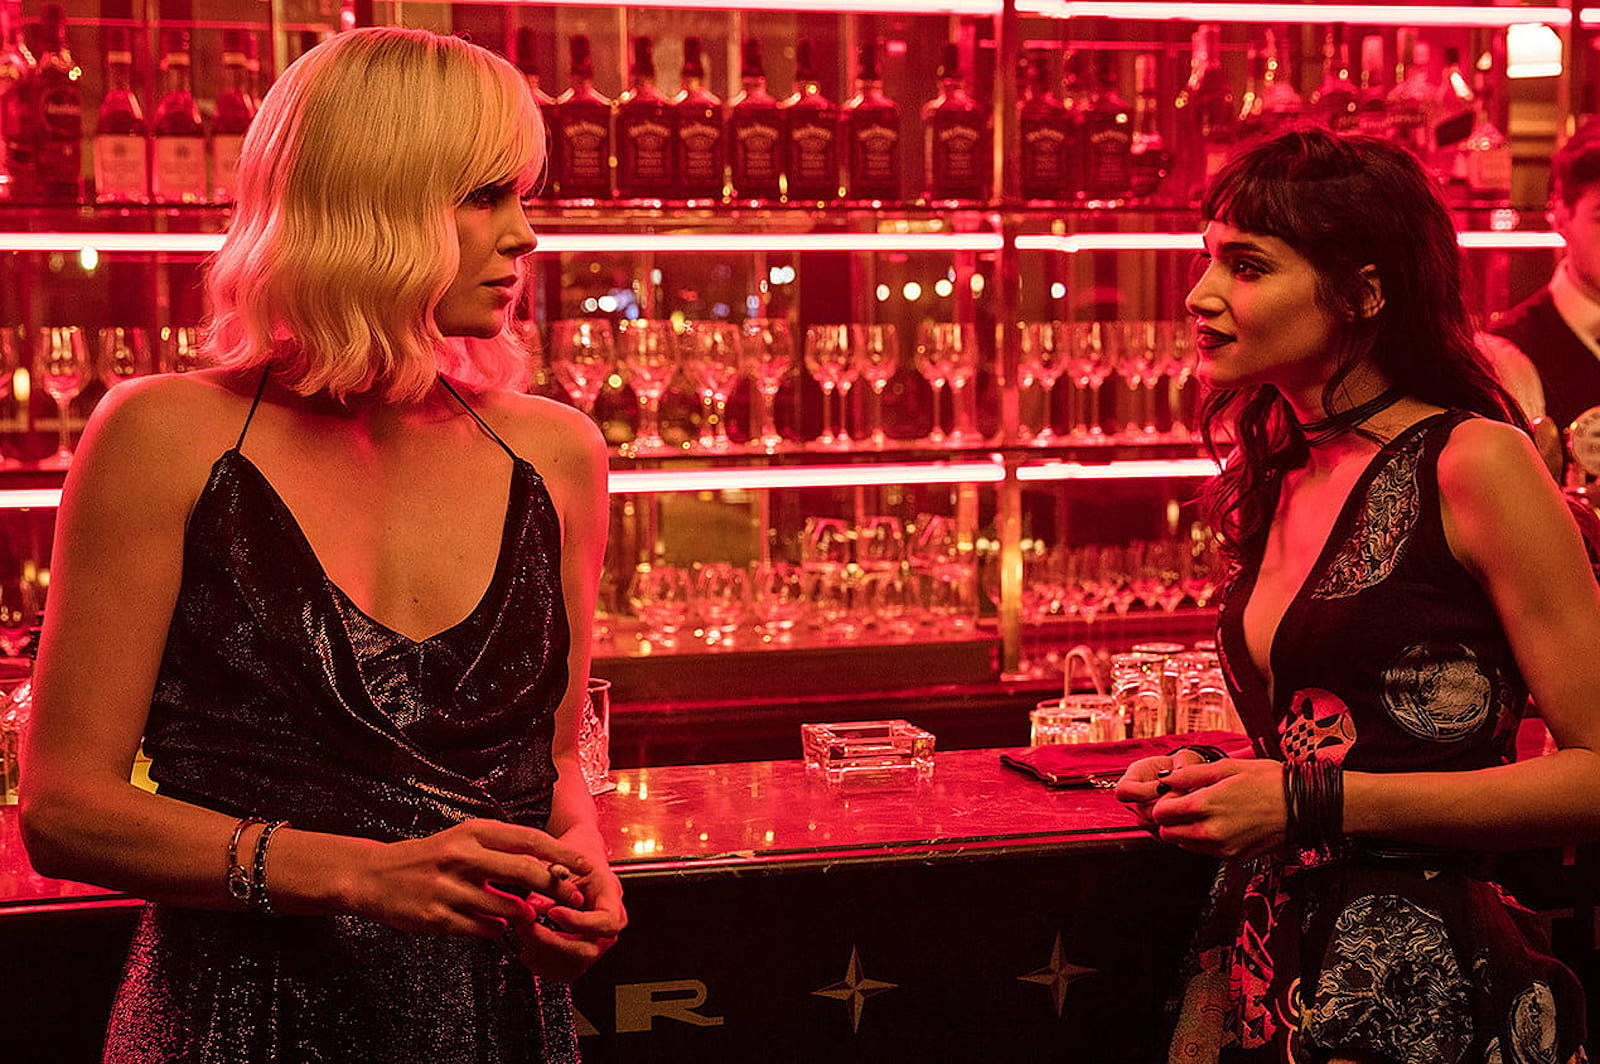 atomic-blonde-review-charlize-theron-bar-1500x844